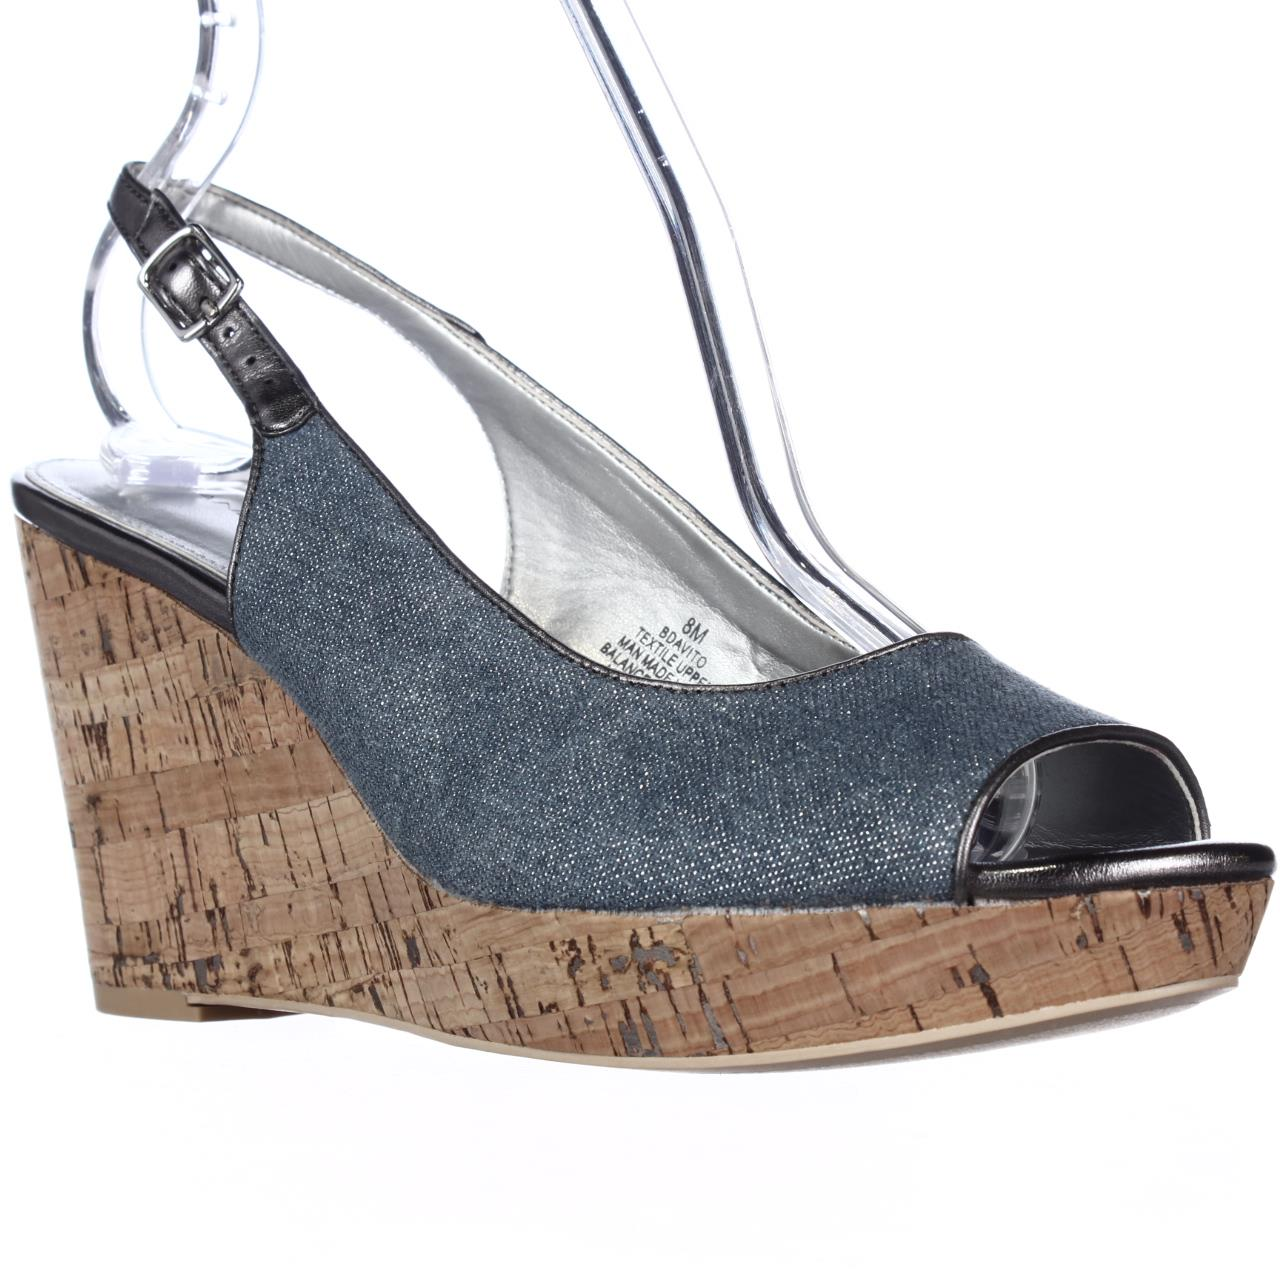 Womens Bandolino Avito Wedge Slingback Sandals - Denim Blue/Pewter